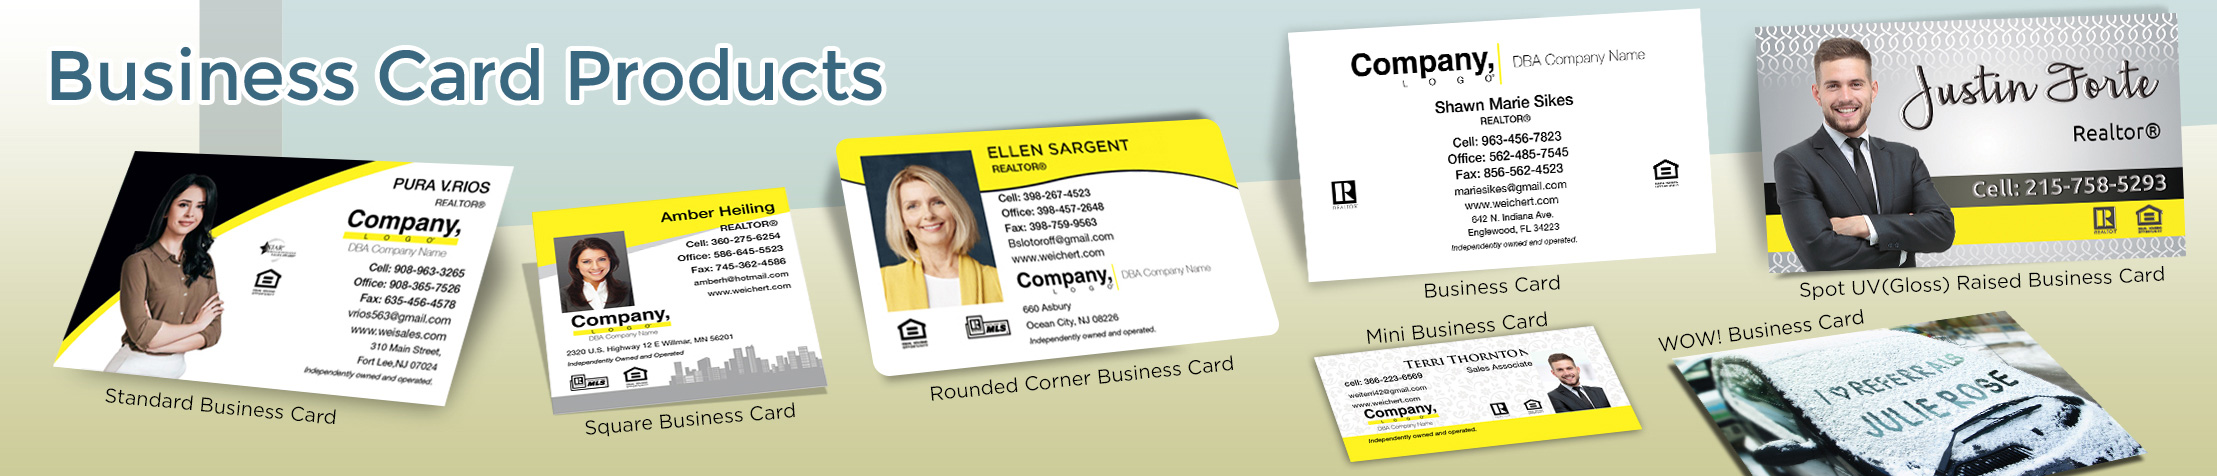 Weichert Real Estate Business Card Products - Weichert  - Unique, Custom Business Cards Printed on Quality Stock with Creative Designs for Realtors | BestPrintBuy.com